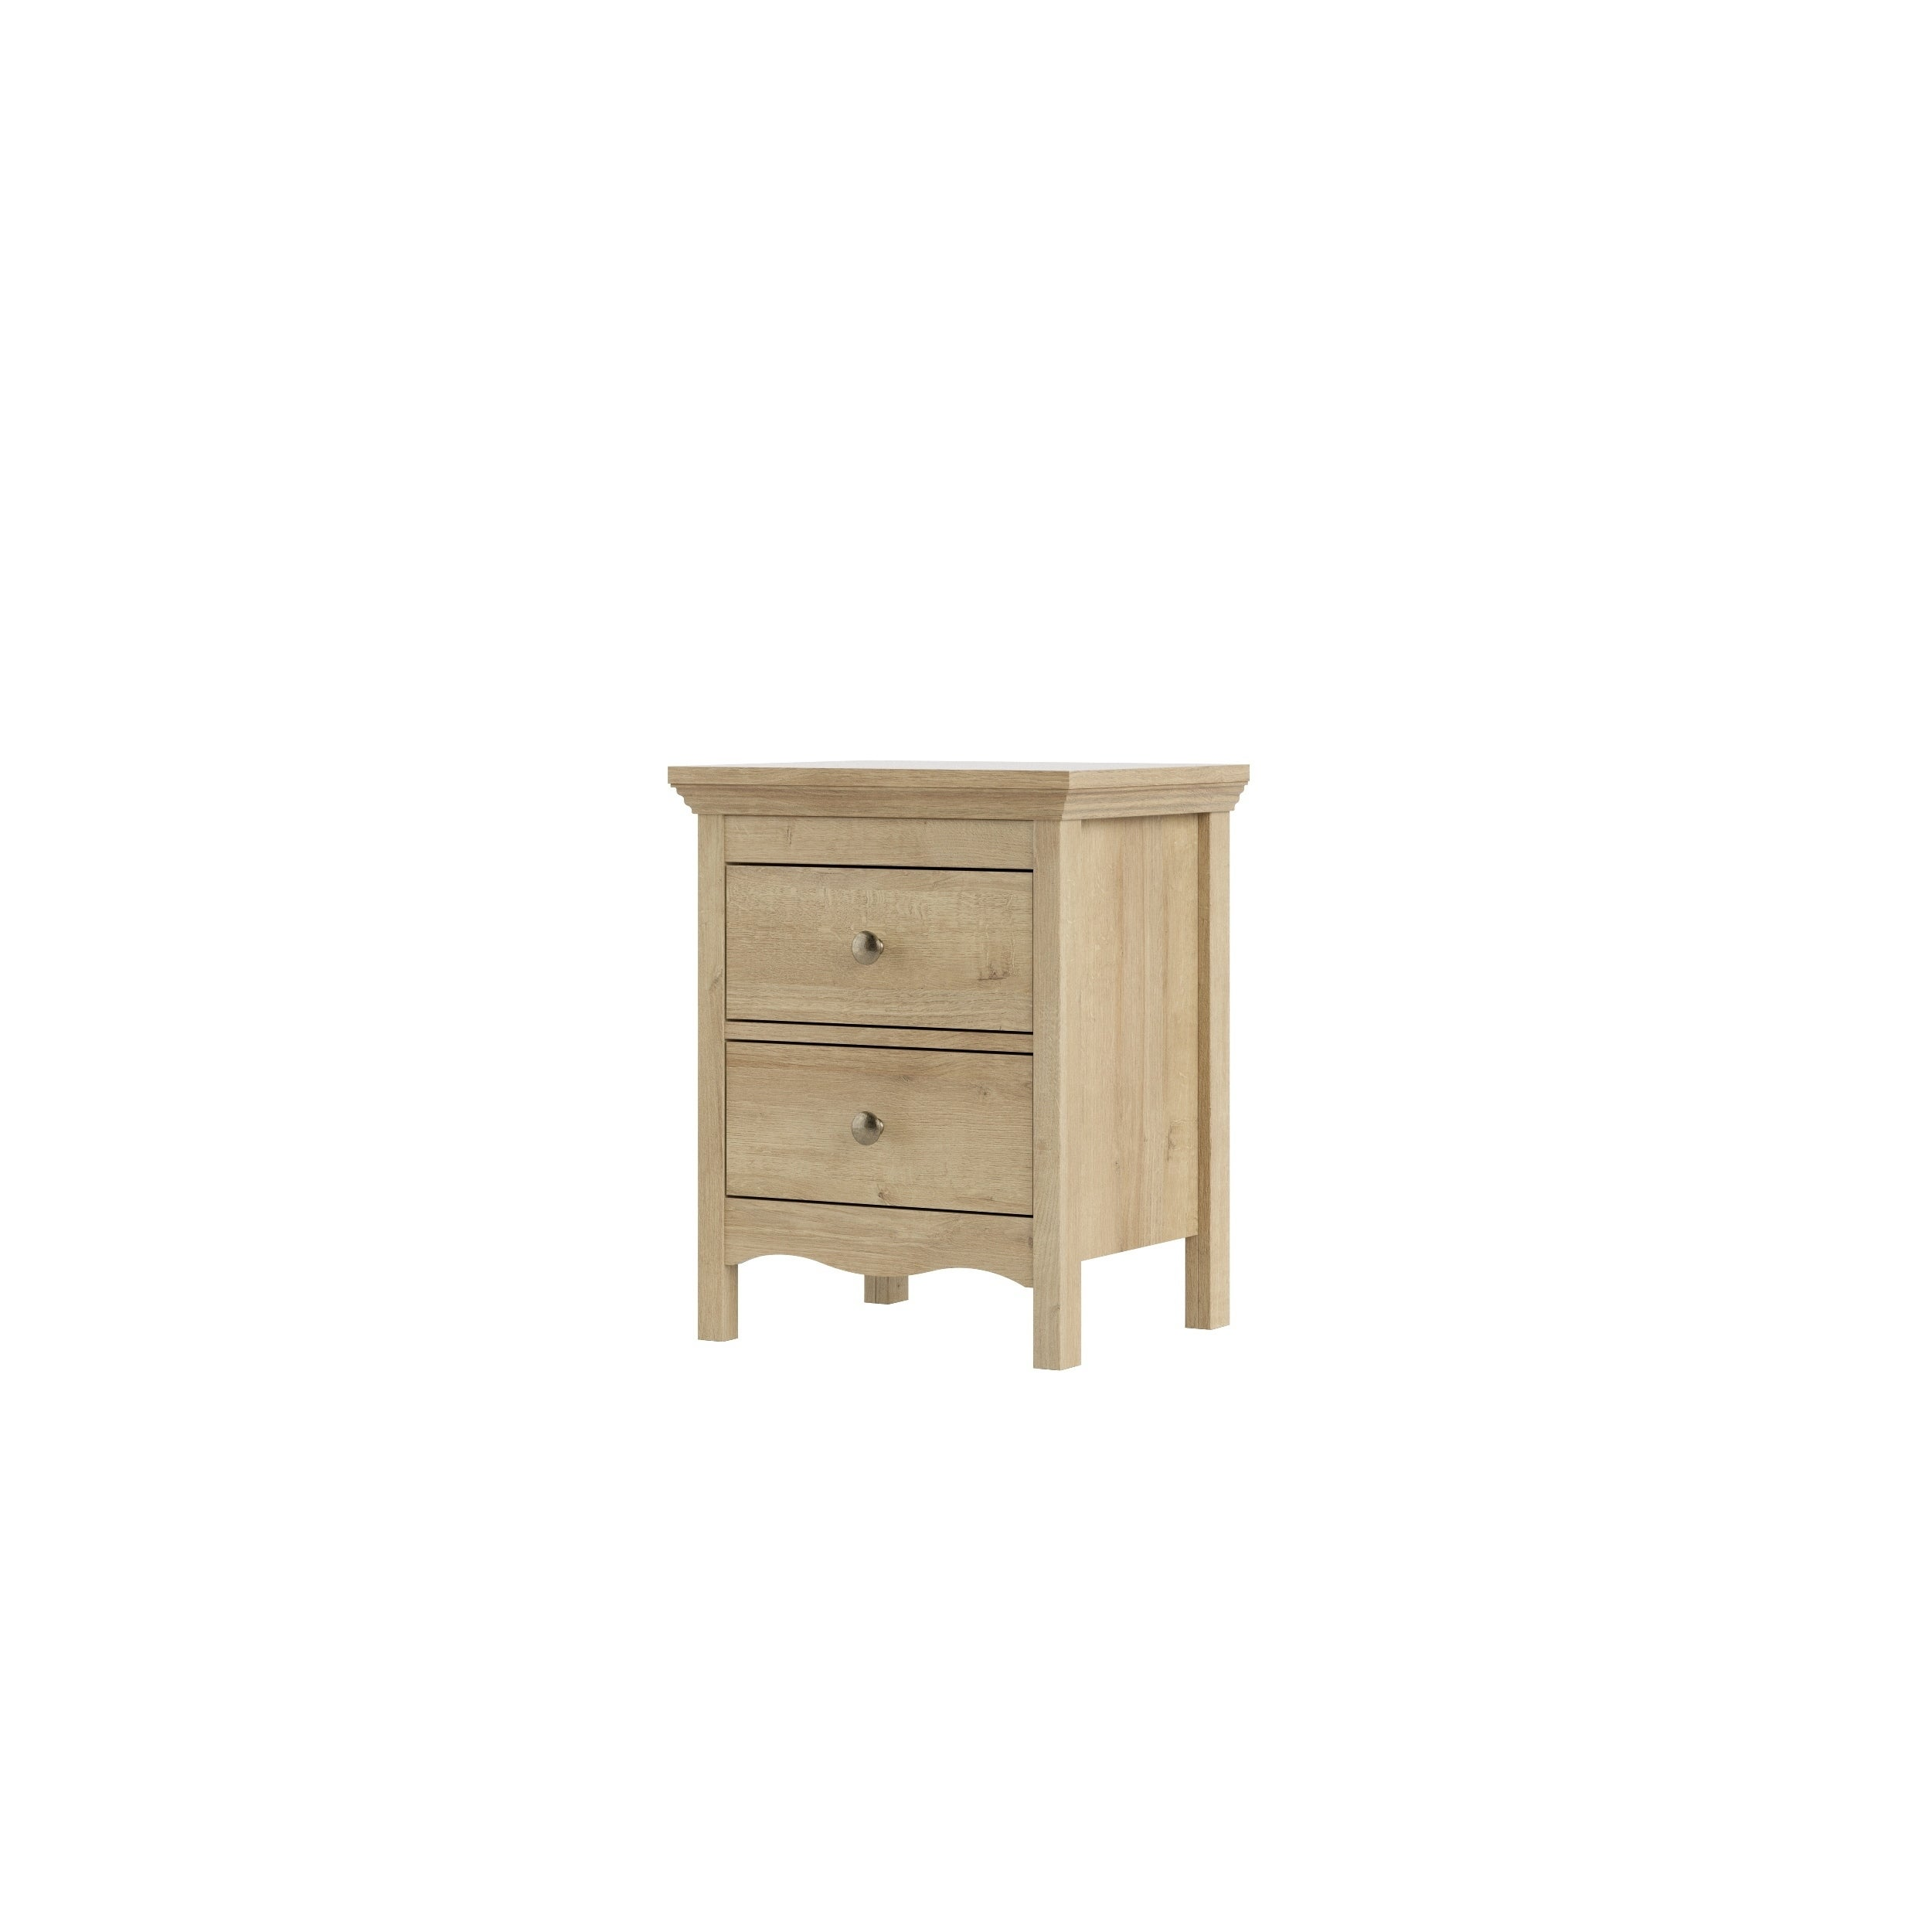 TVILUM-SCANBIRK Silkeborg Riviera Oak 2-drawer Nightstand...